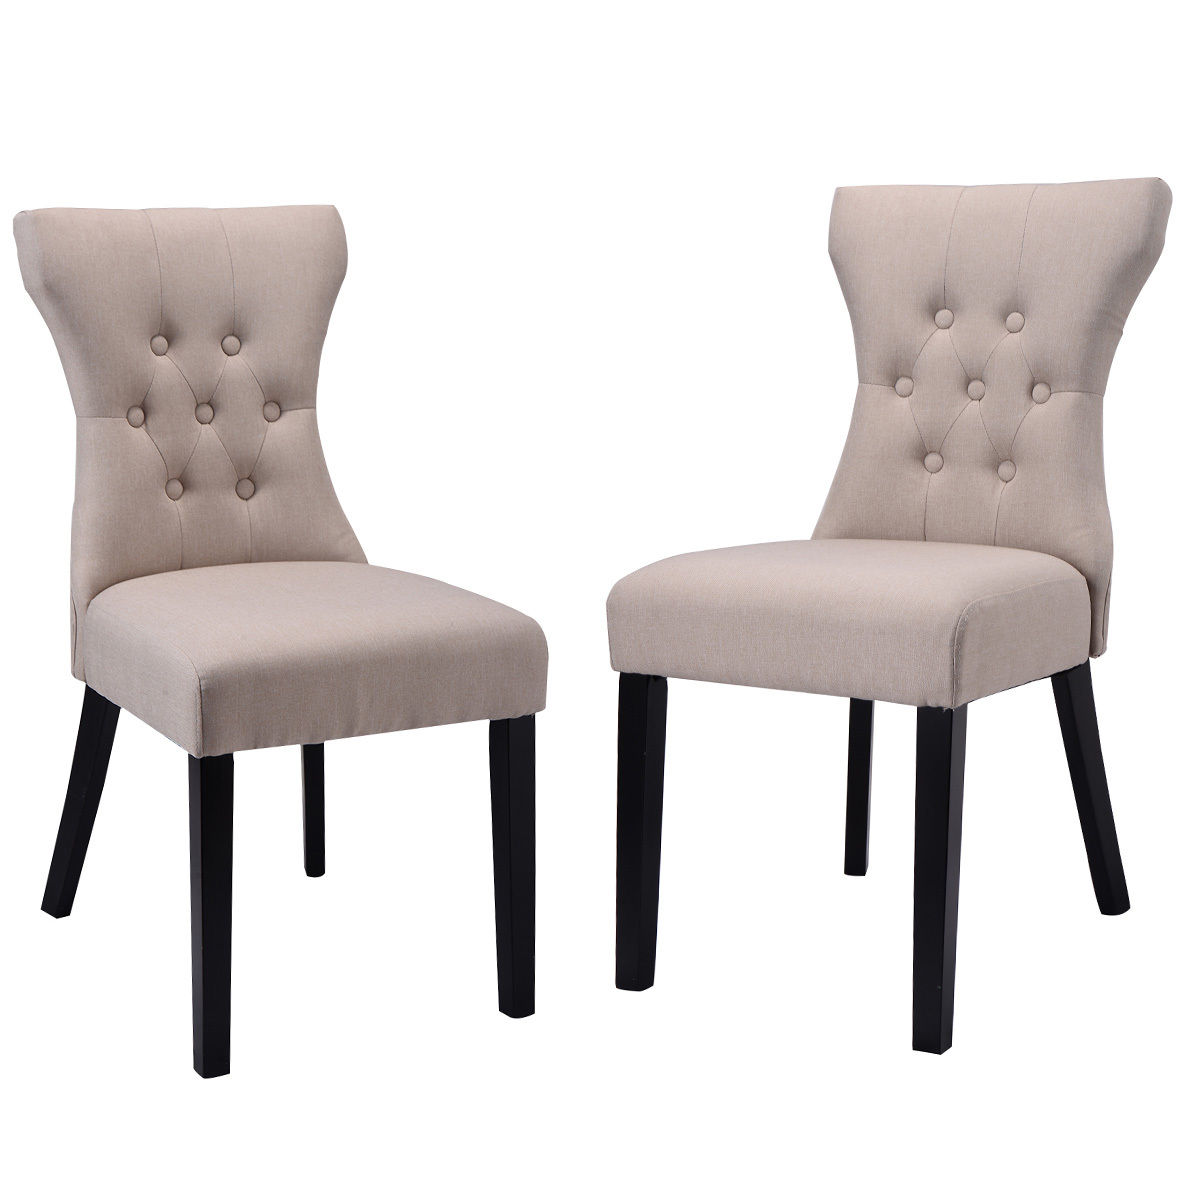 Costway 2PCS Dining Chair Modern Elegant Chair Home Kitchen Living Room Furniture Beige by Costway